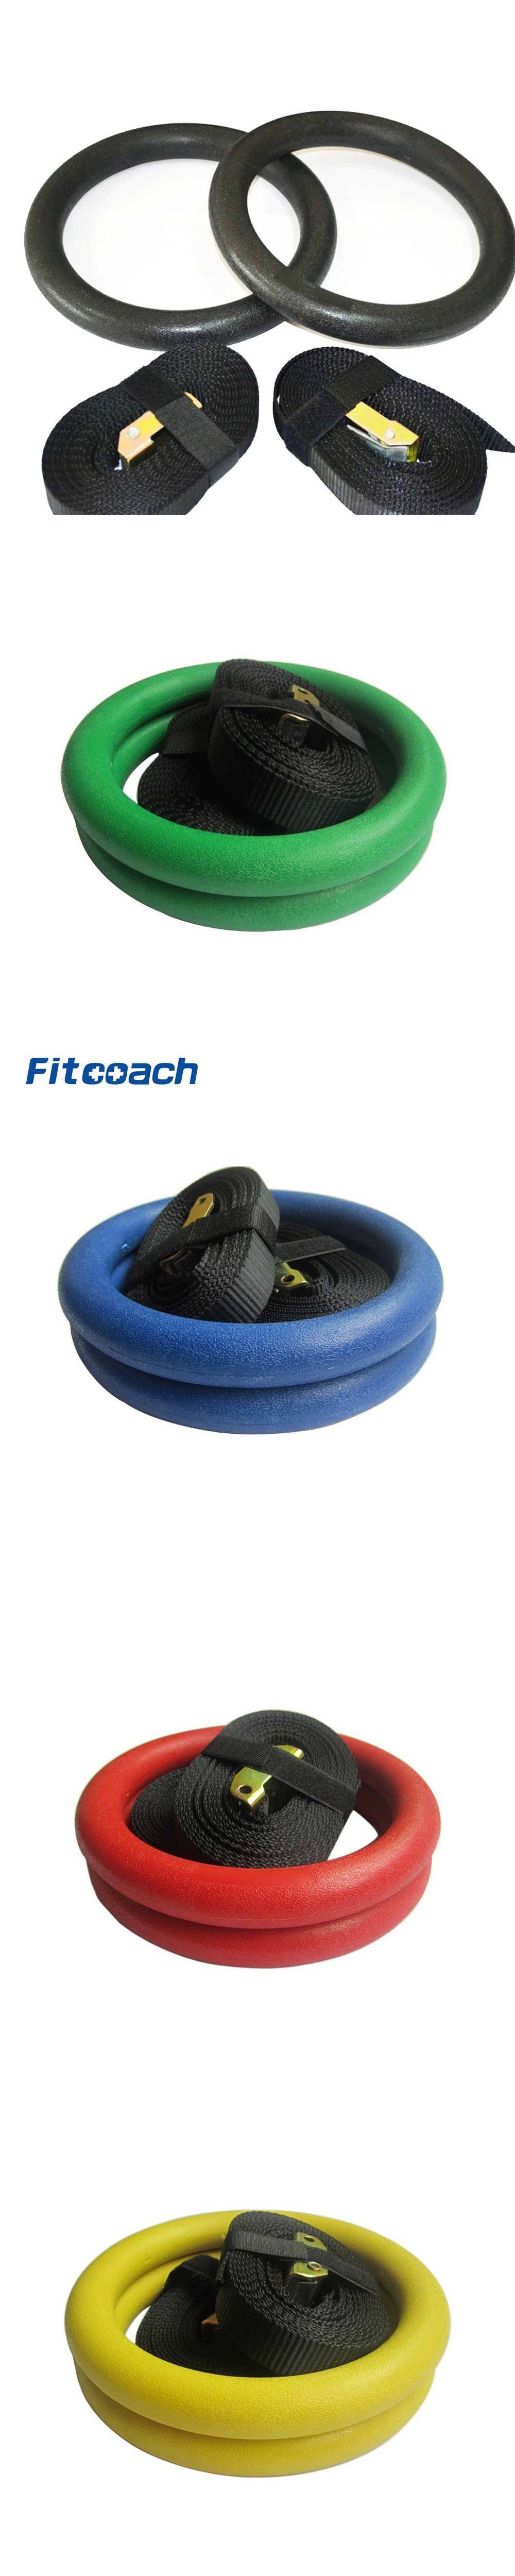 weightlifting exercise power rings poise gymnast photo performance athlete muscle en concentration free arm competition male strength gymnastics man pose event fitness sports images physical